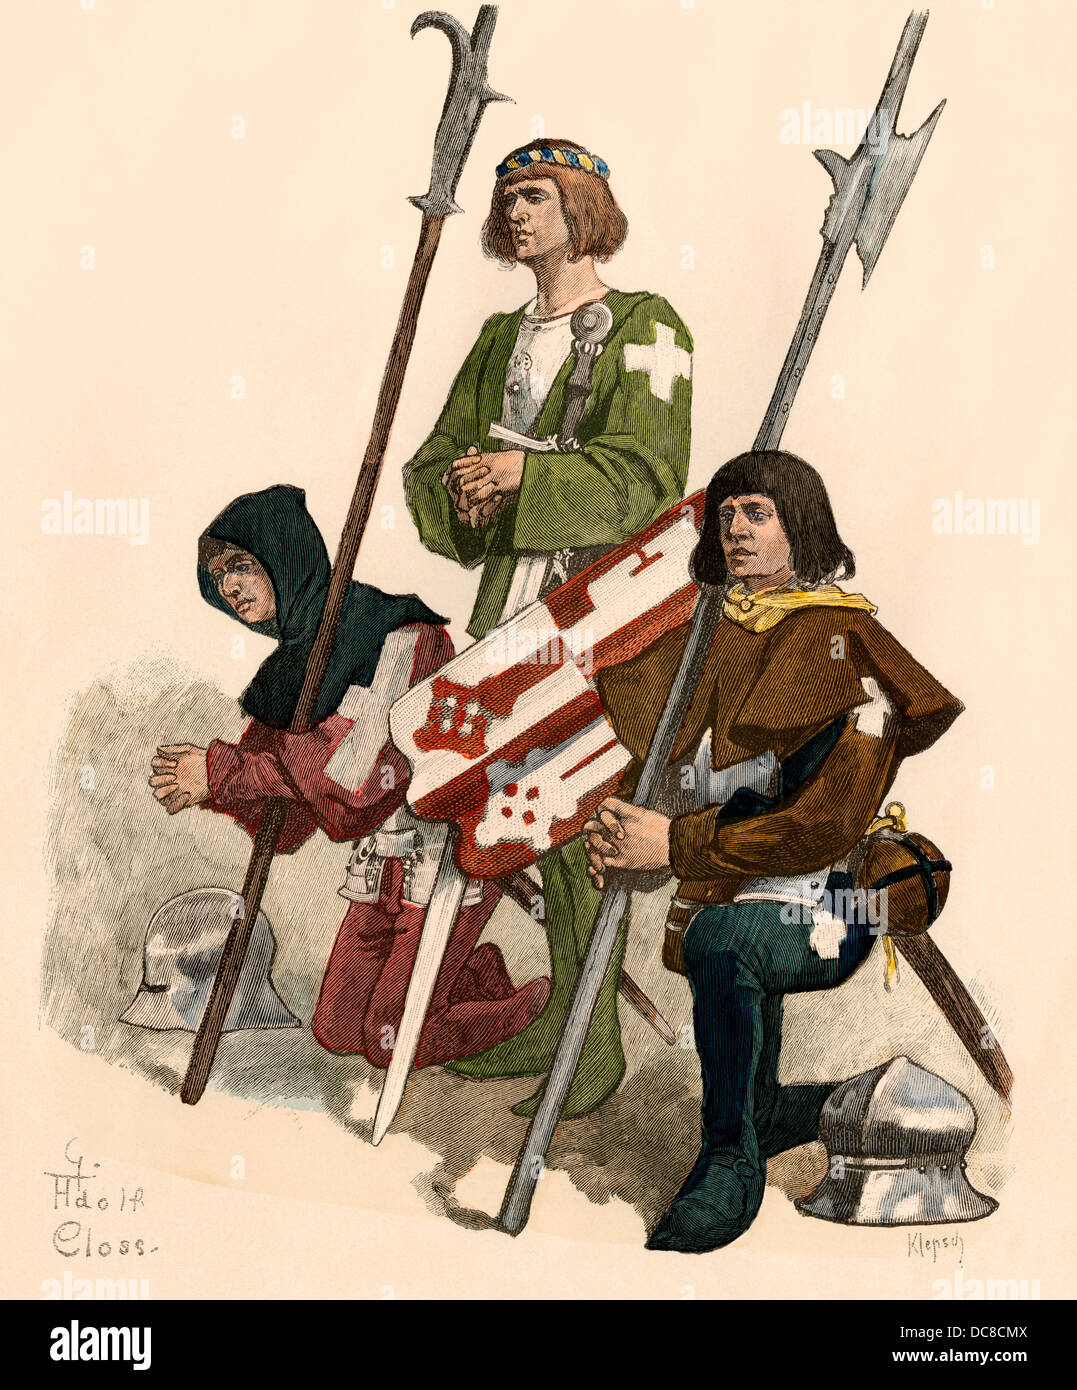 Swiss knight afoot with his page and squire, 1400s. Hand-colored print - Stock Image